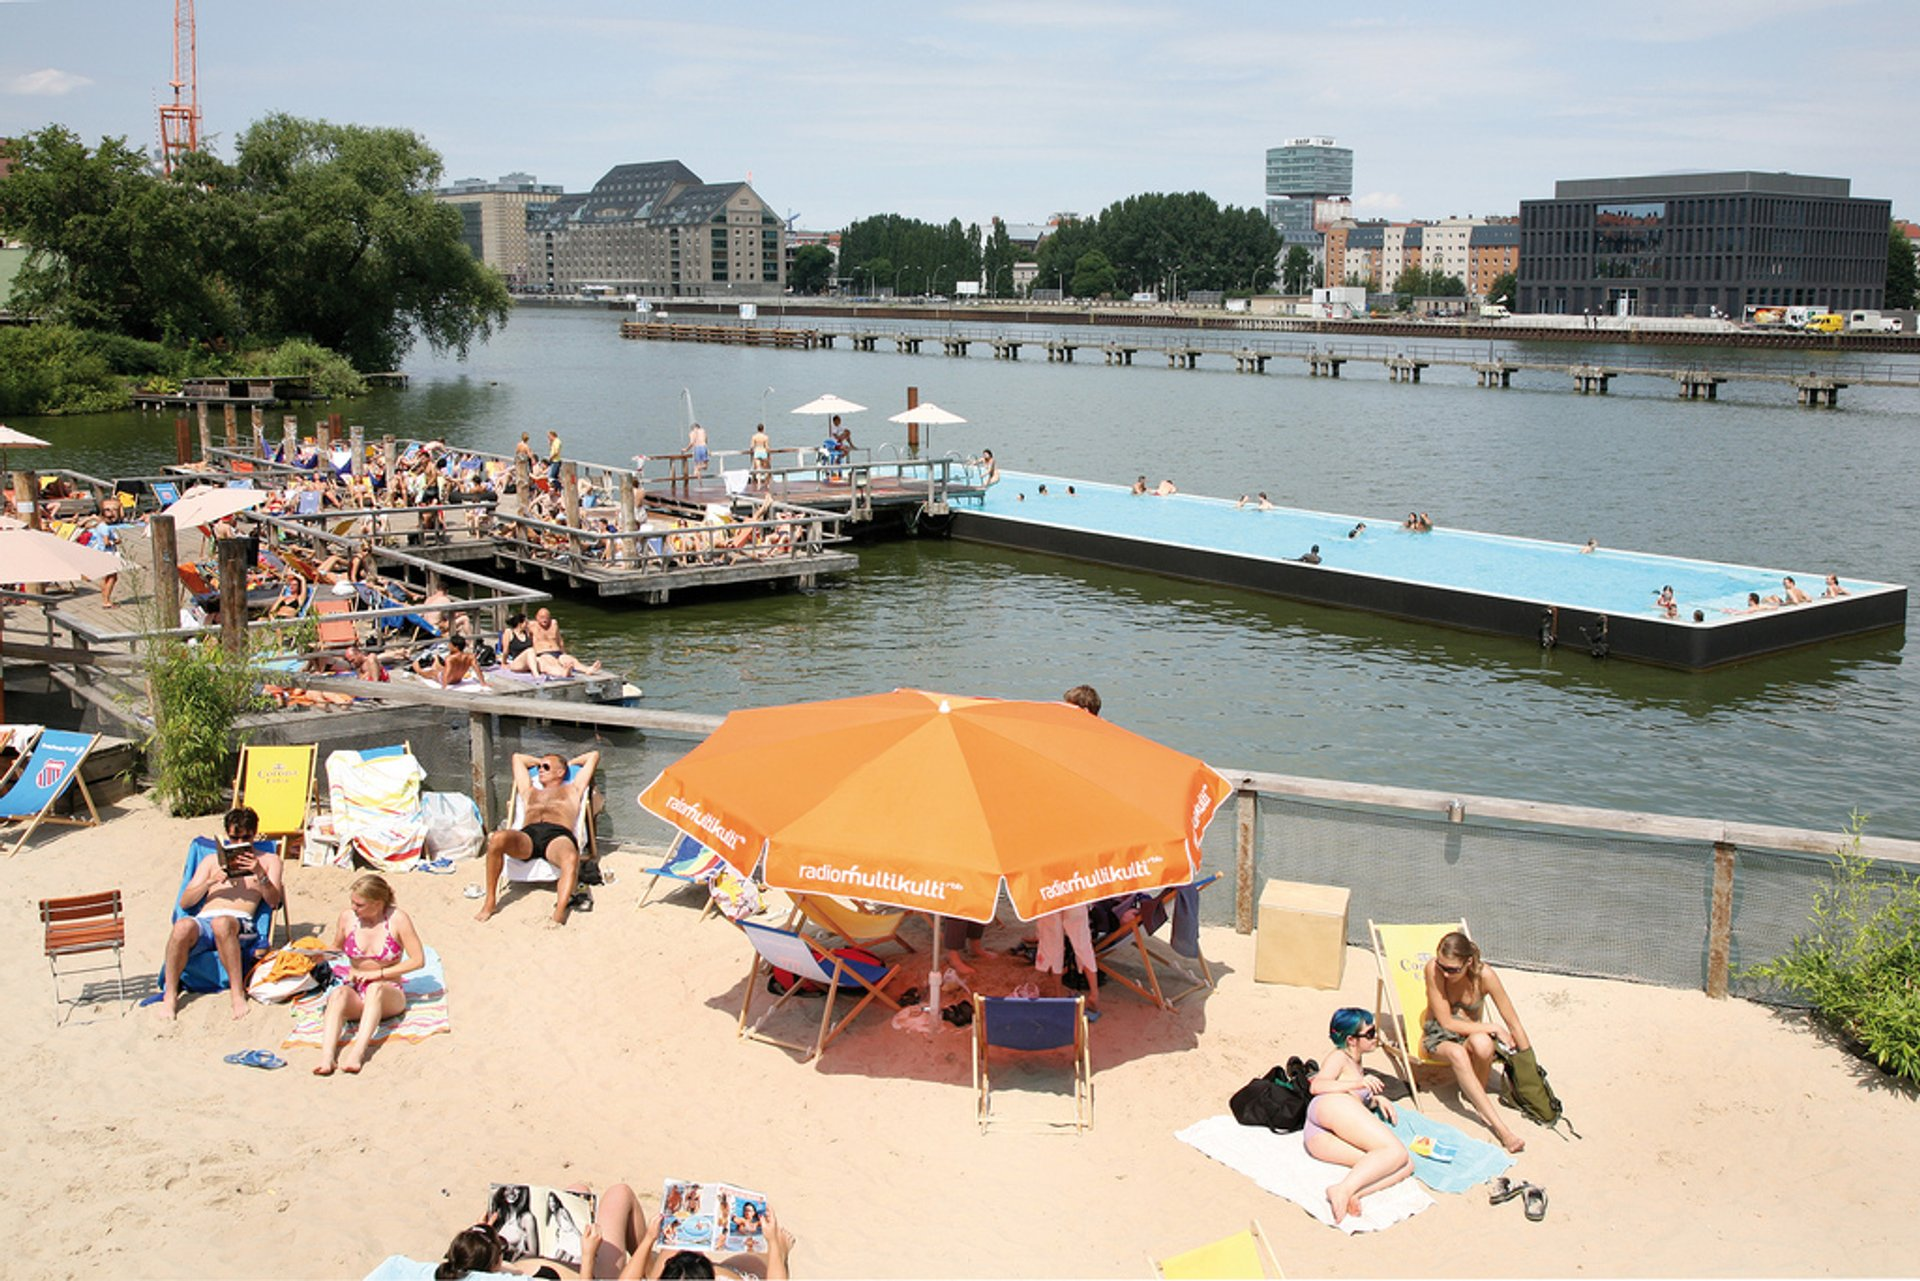 Badeschiff Bathing Season in Berlin - Best Season 2020